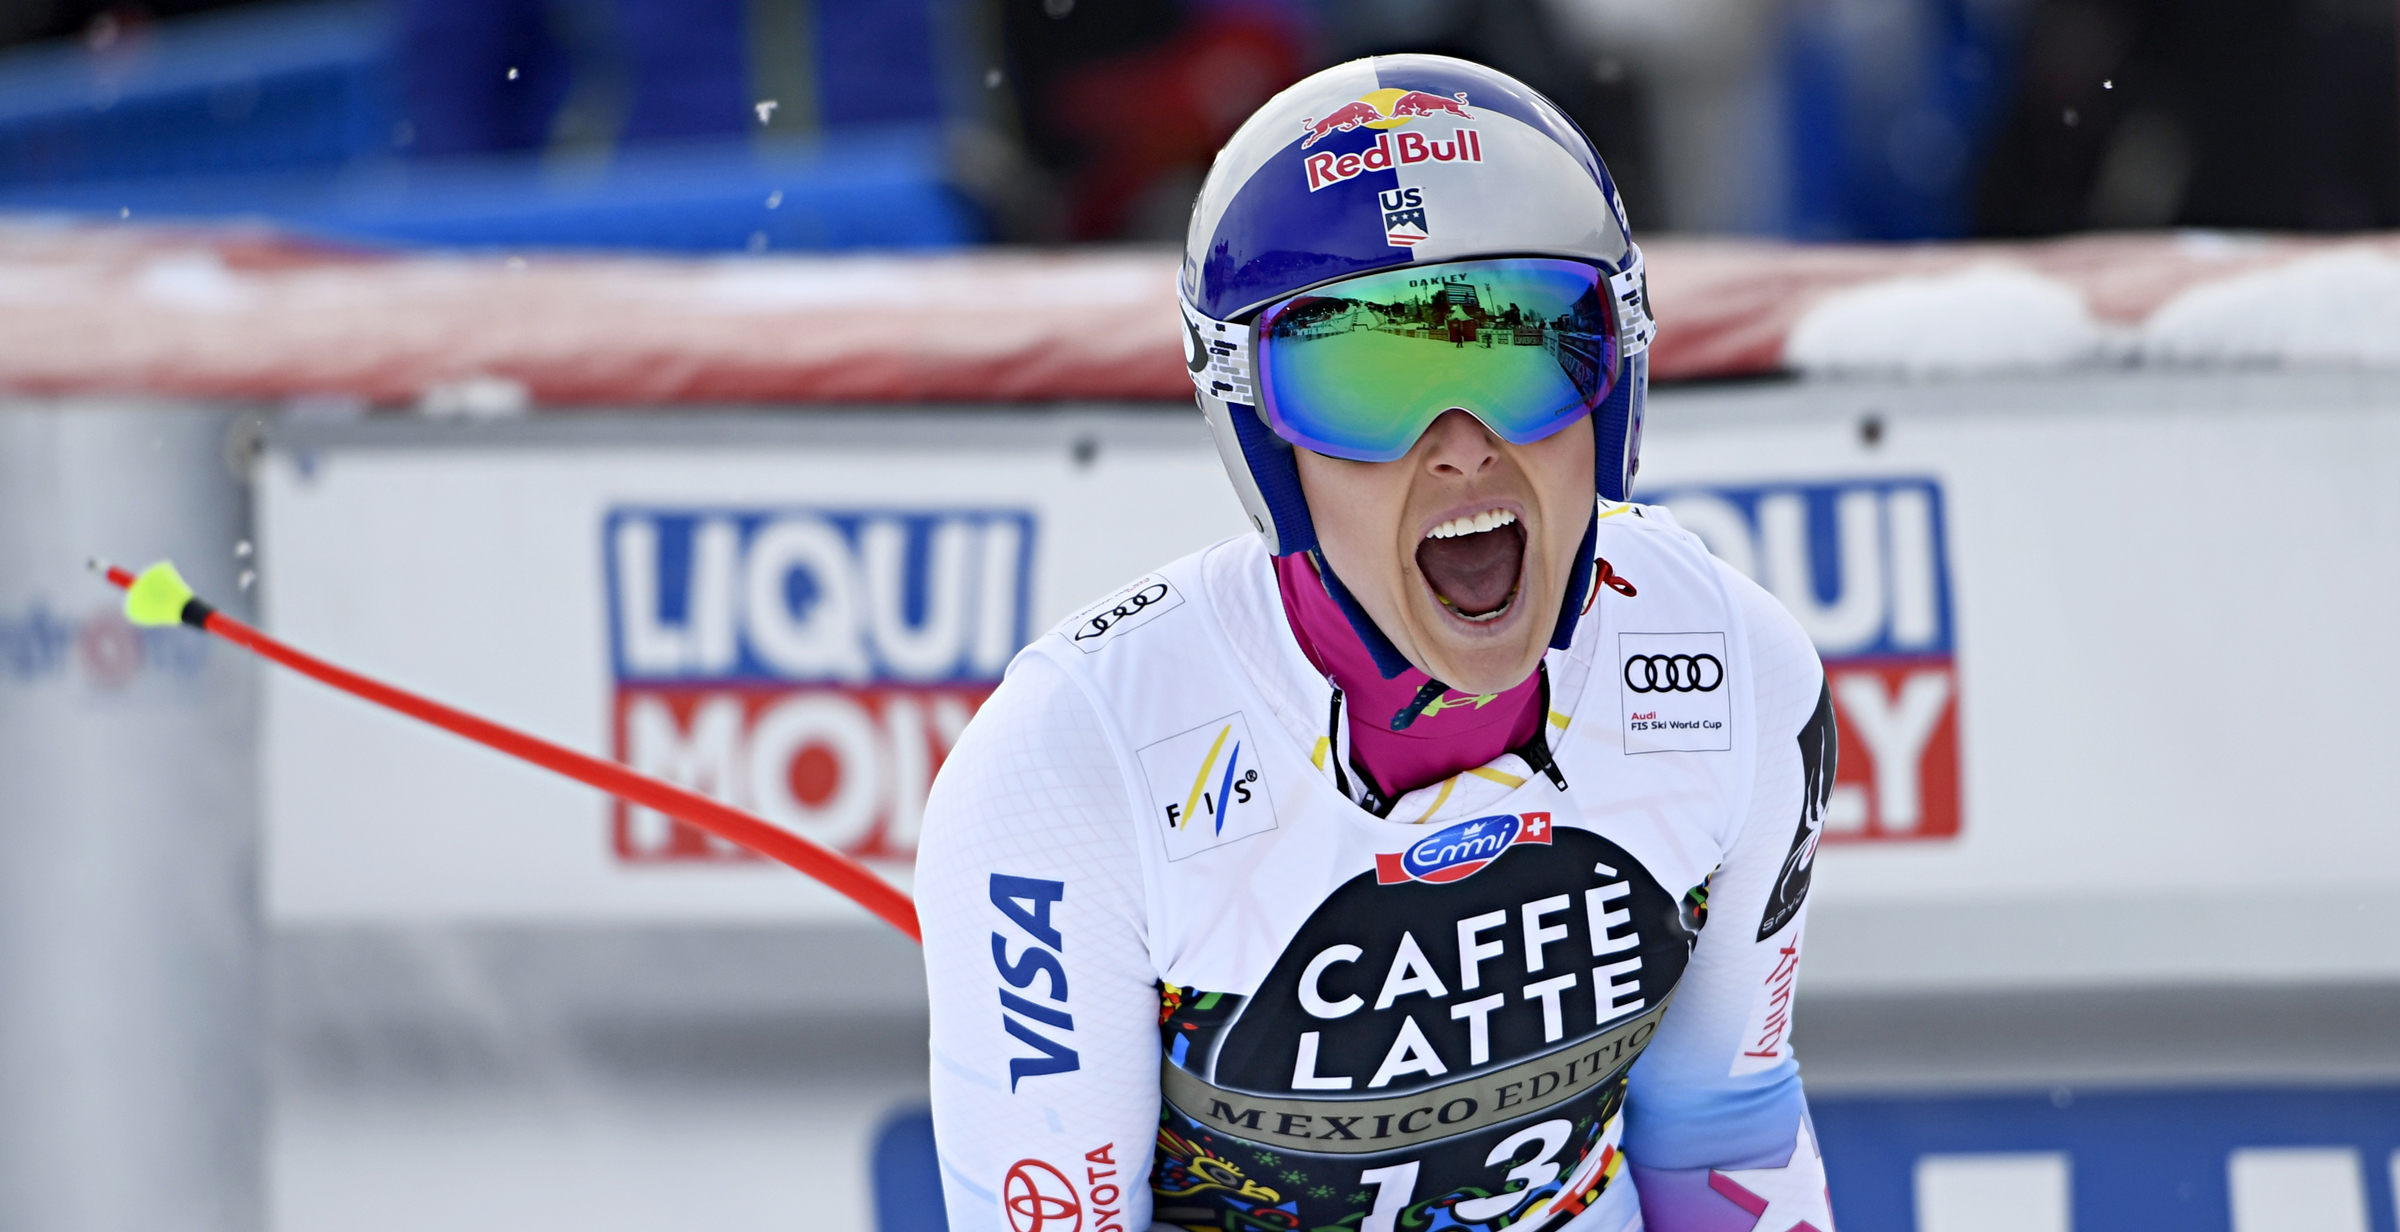 Lindsey Vonn celebrates her 82nd World Cup victory Wednesday in Are, Sweden. (Getty Images/Agence Zoom – Alain Grosclaude)